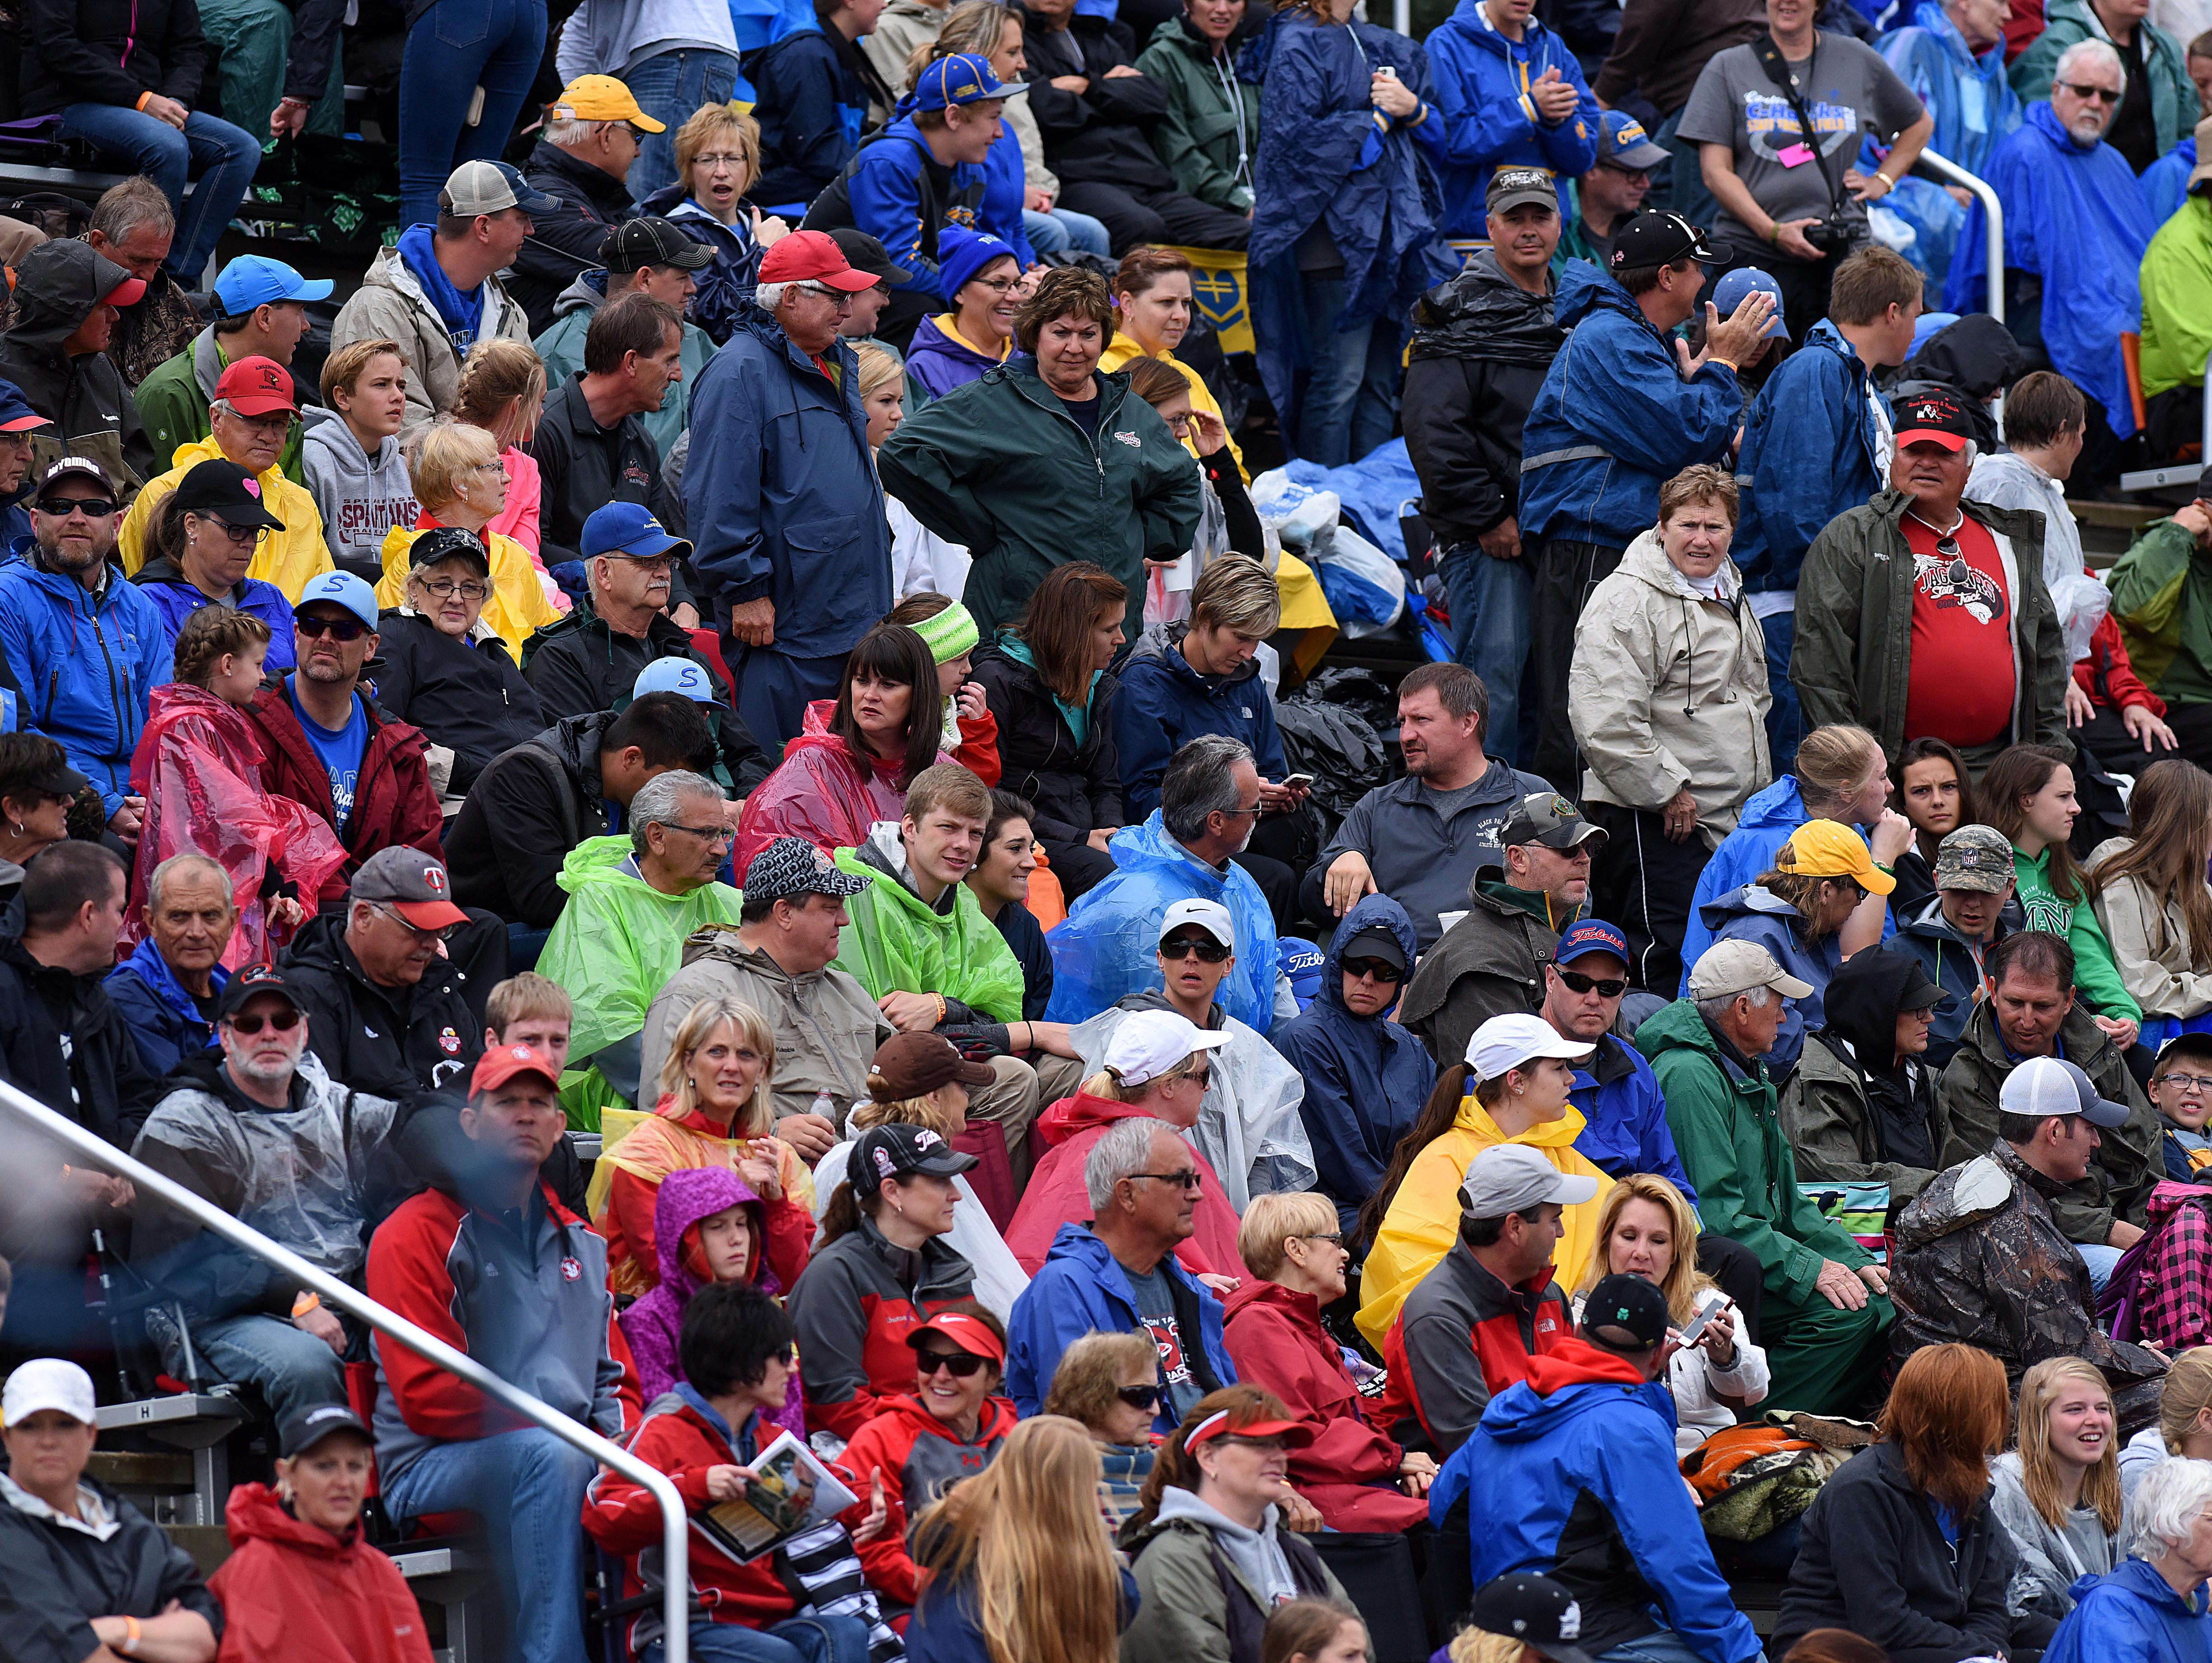 Spectators dress in rain gear while watching the 2016 SD State Track and Field Meet at Howard Wood Field on Saturday, May 28, 2016.